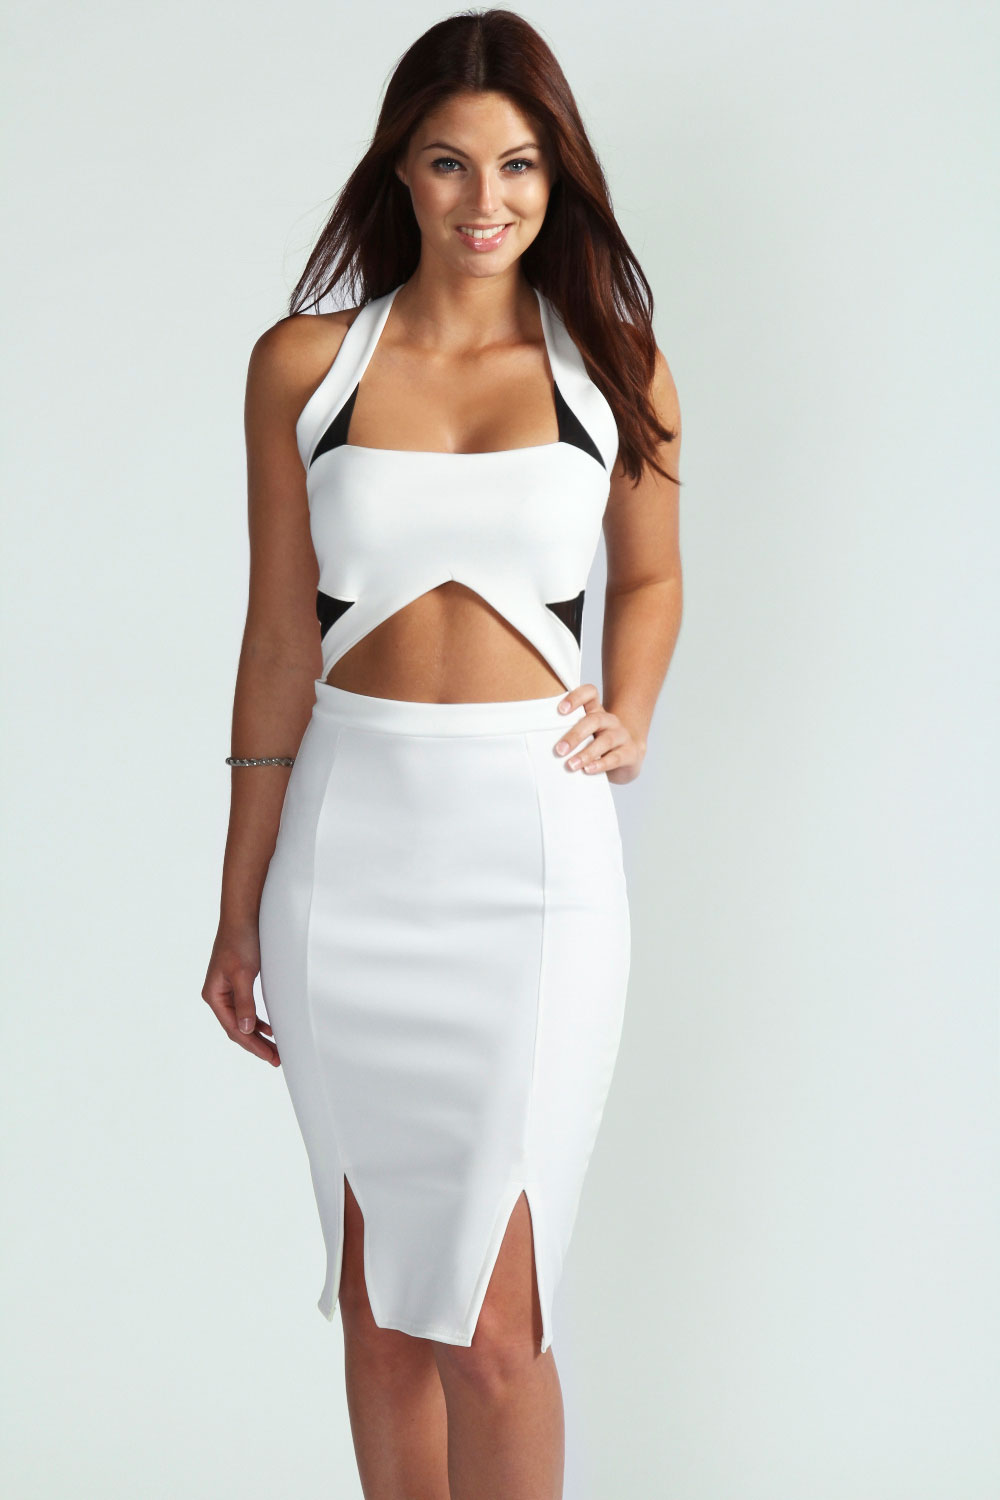 Boohoo-Womens-Ladies-Party-Short-Dress